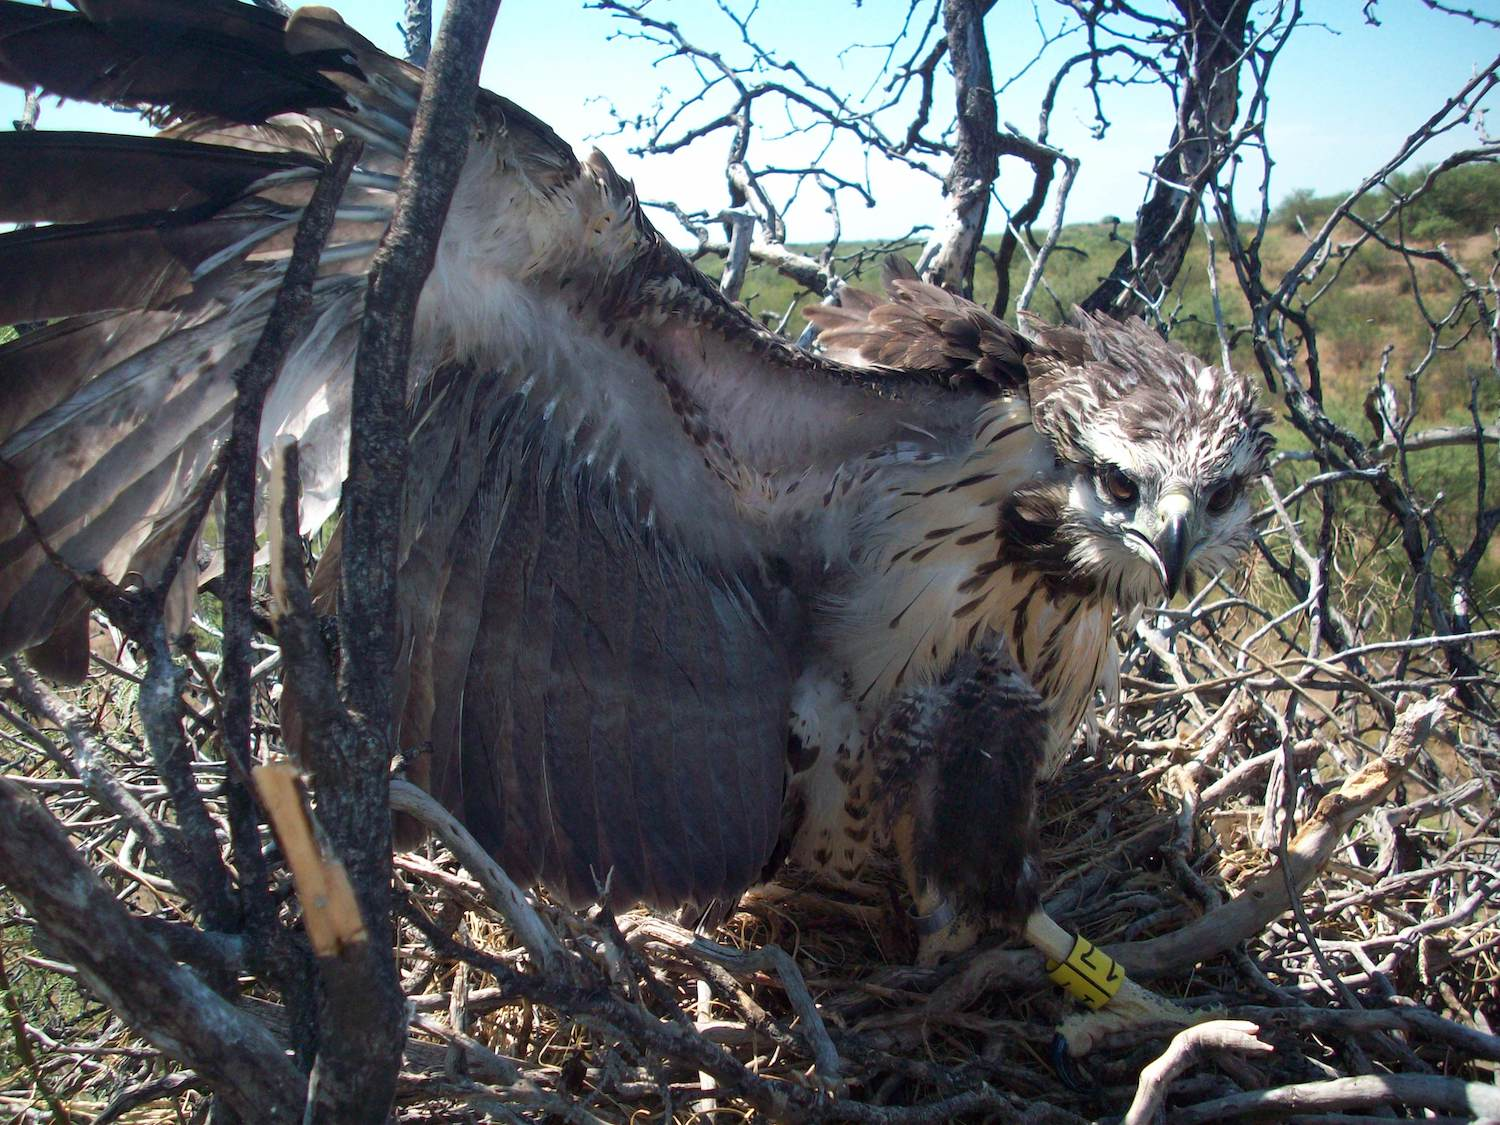 A young Chaco eagle in the Ñancuñán Biosphere Reserve in Mendoza is startled by the arrival of an intruder. Image by Andrés Capdevielle.